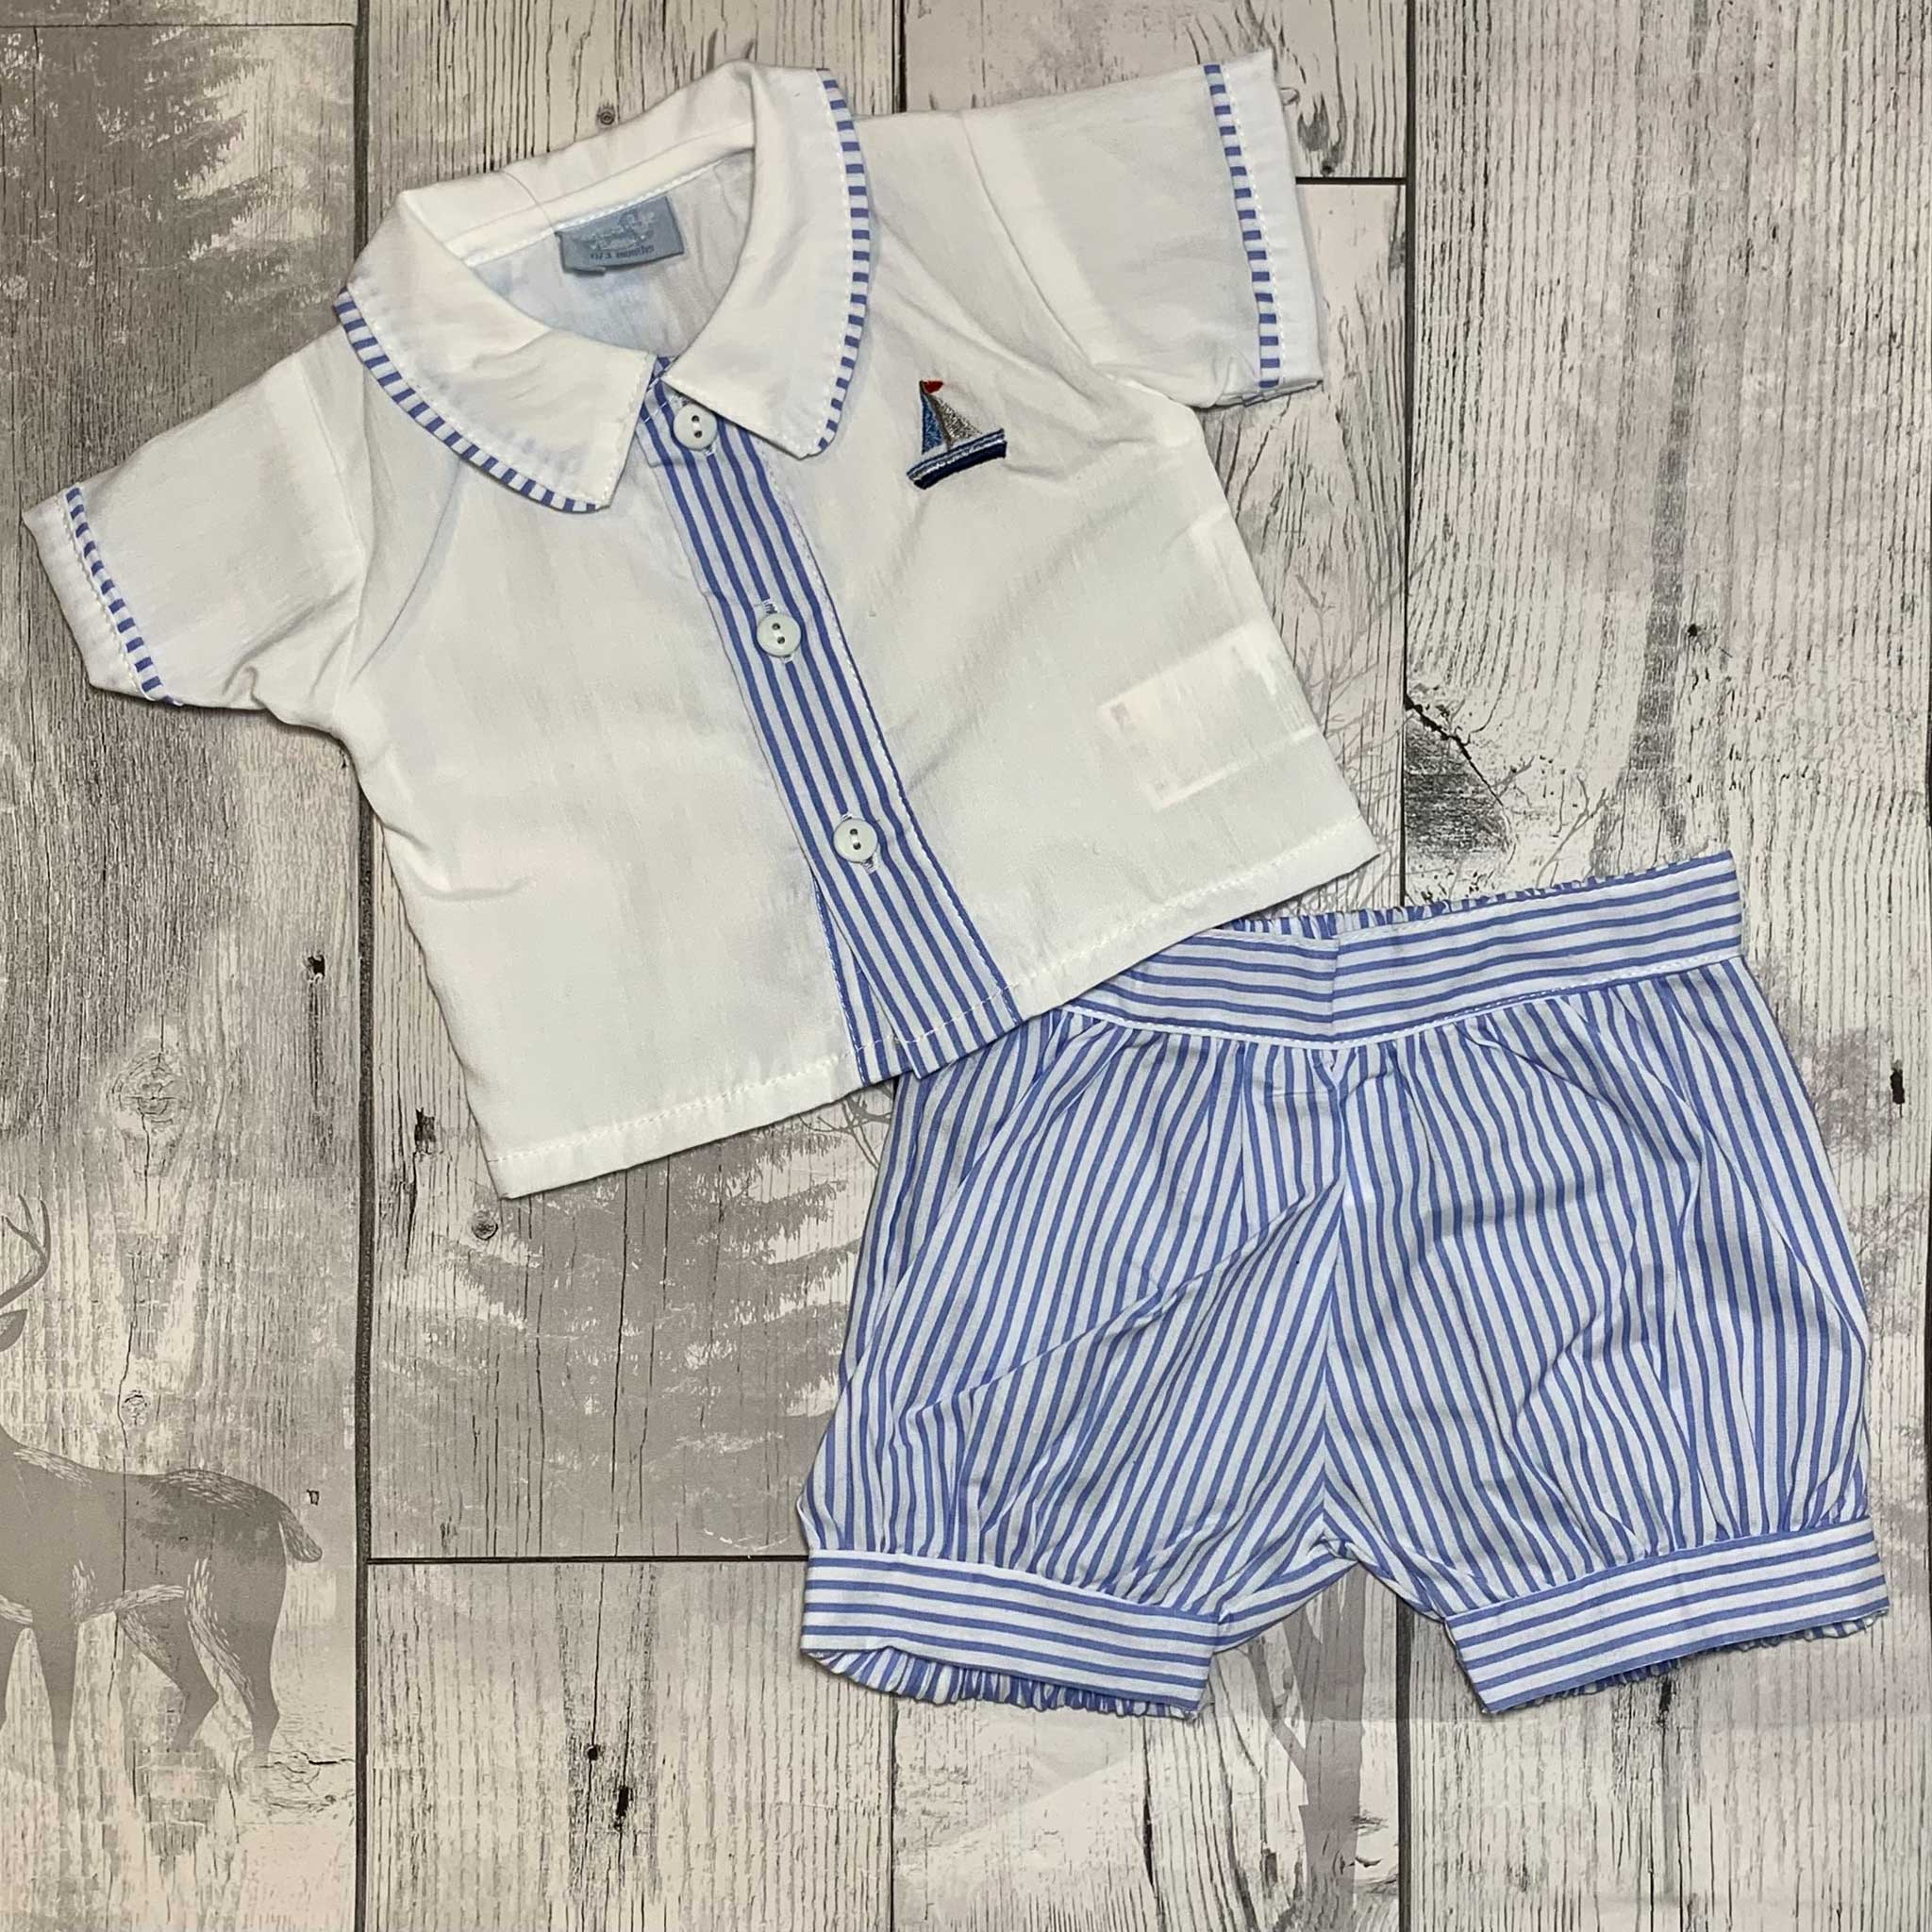 Boys Shorts and Cotton Shirt Outfit